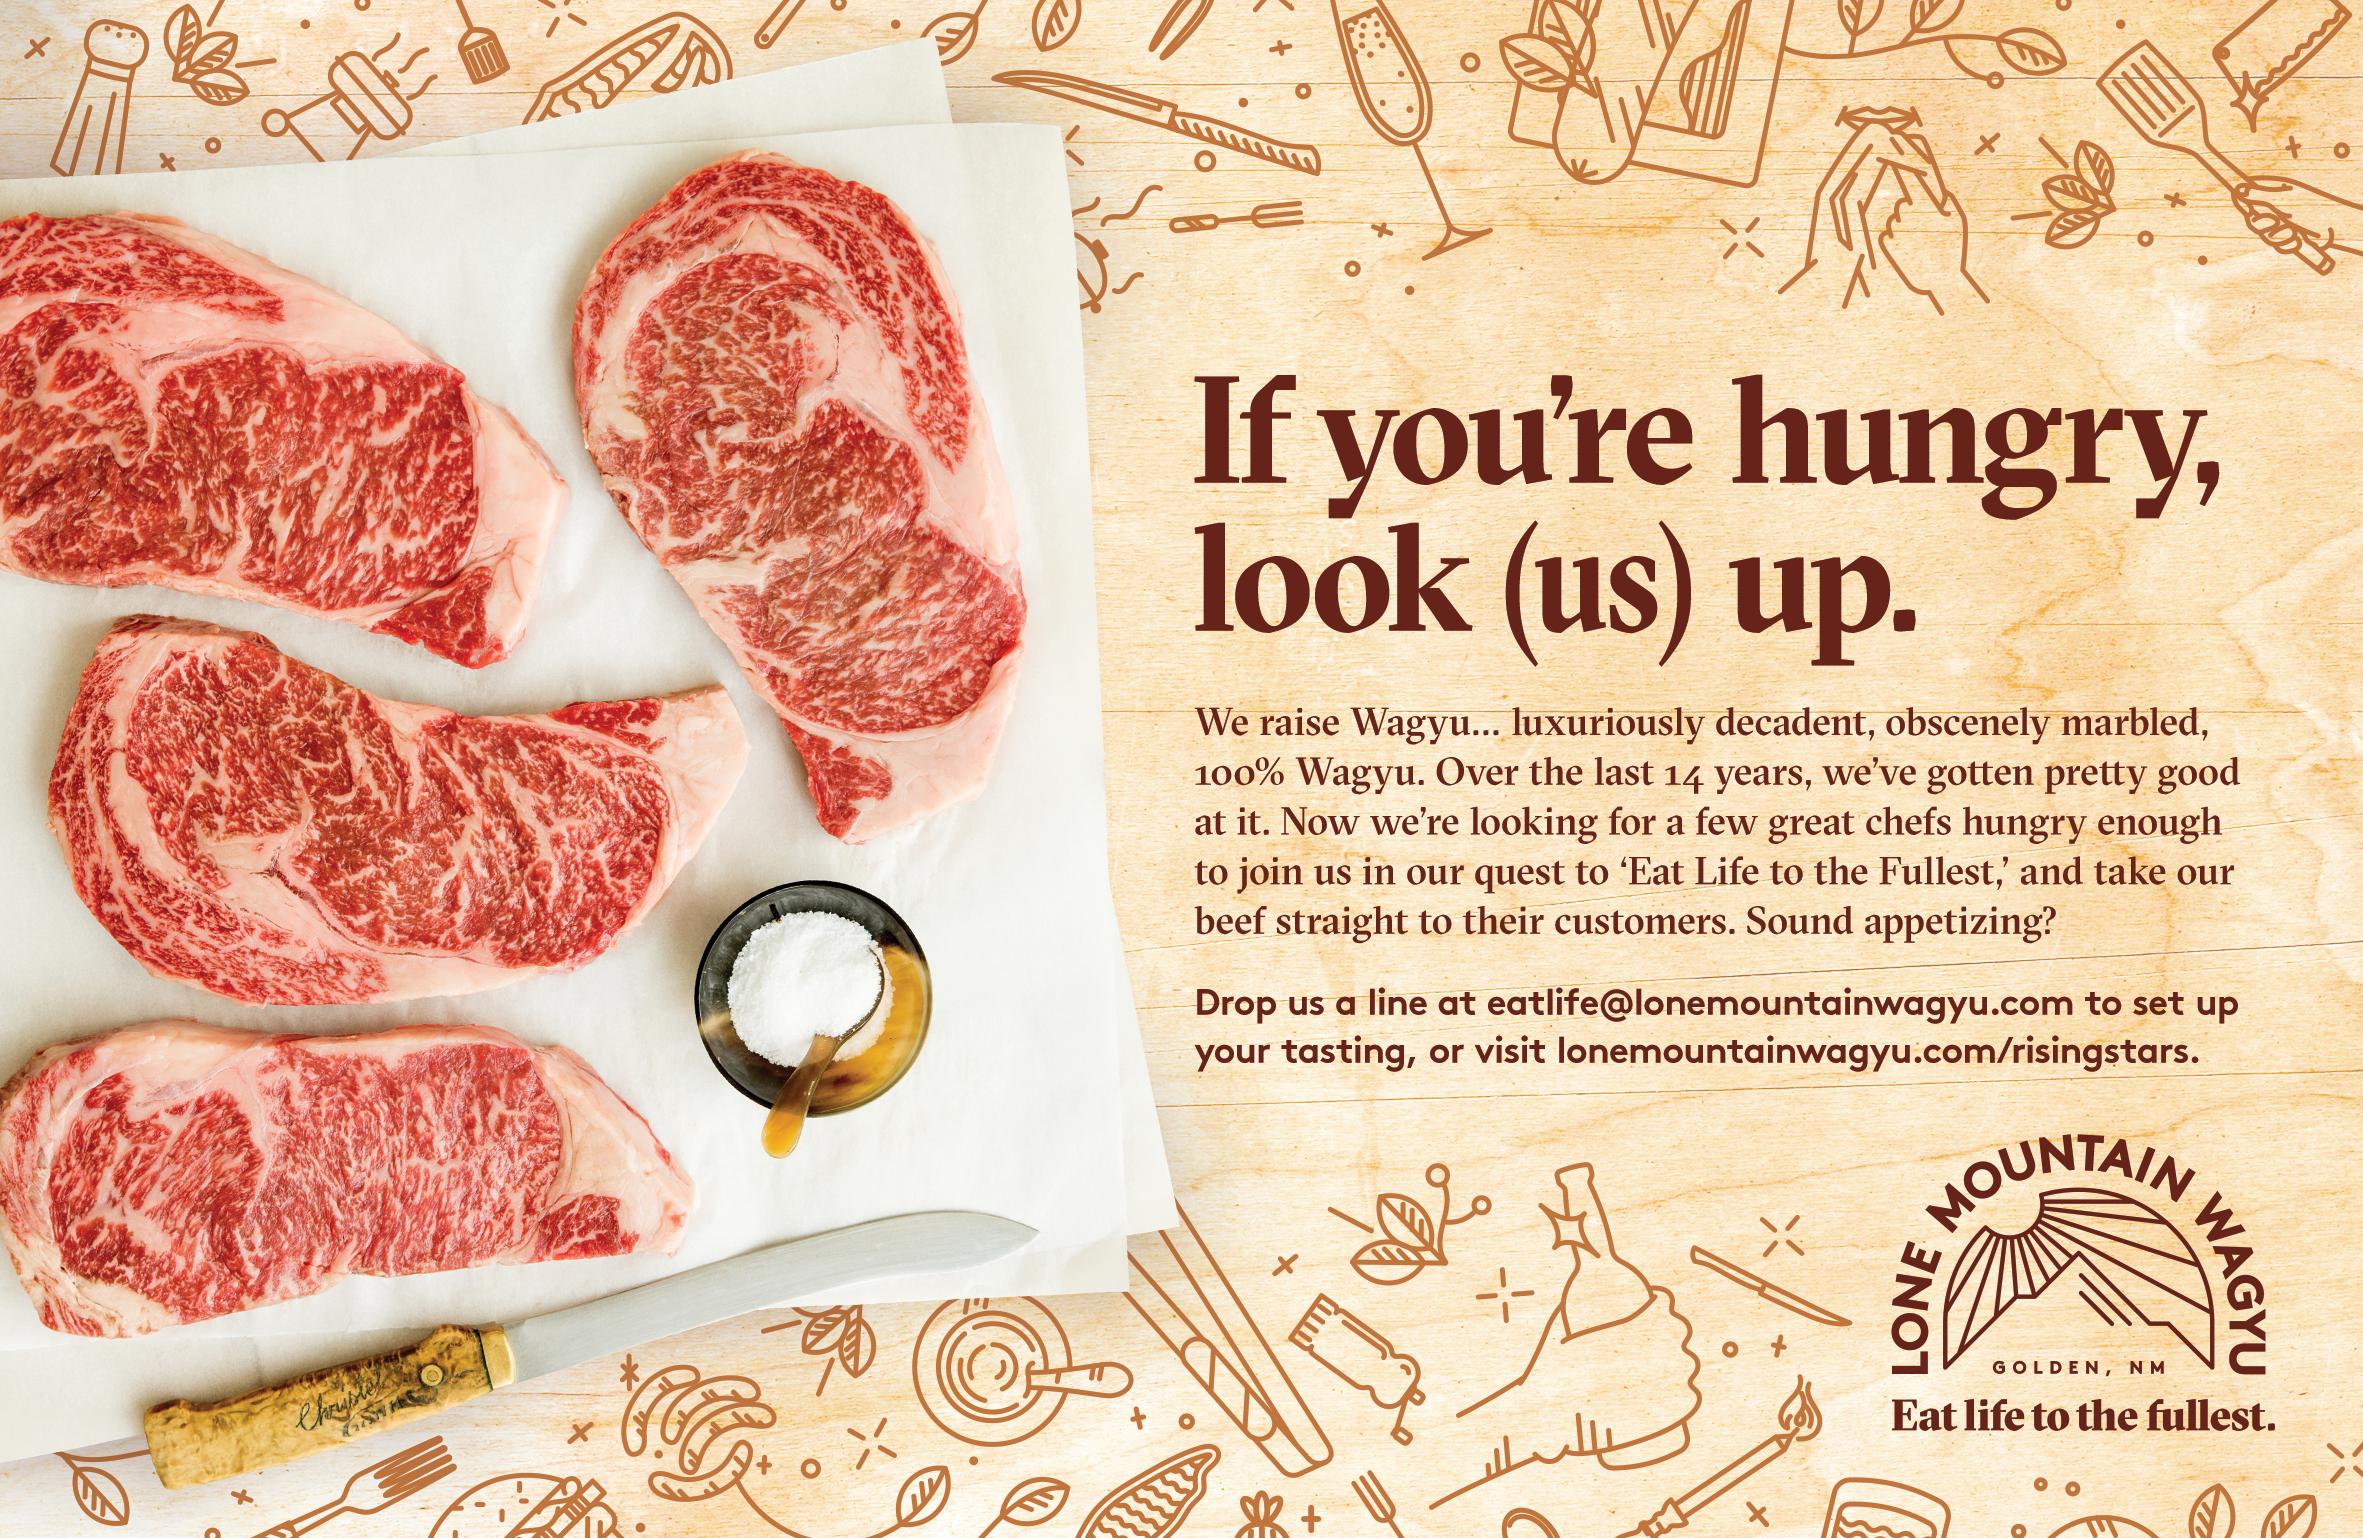 Eat Life to the Fullest branding print ad for Lone Mountain Wagyu by Tom Morhous and Remo+Oob, Ltd.